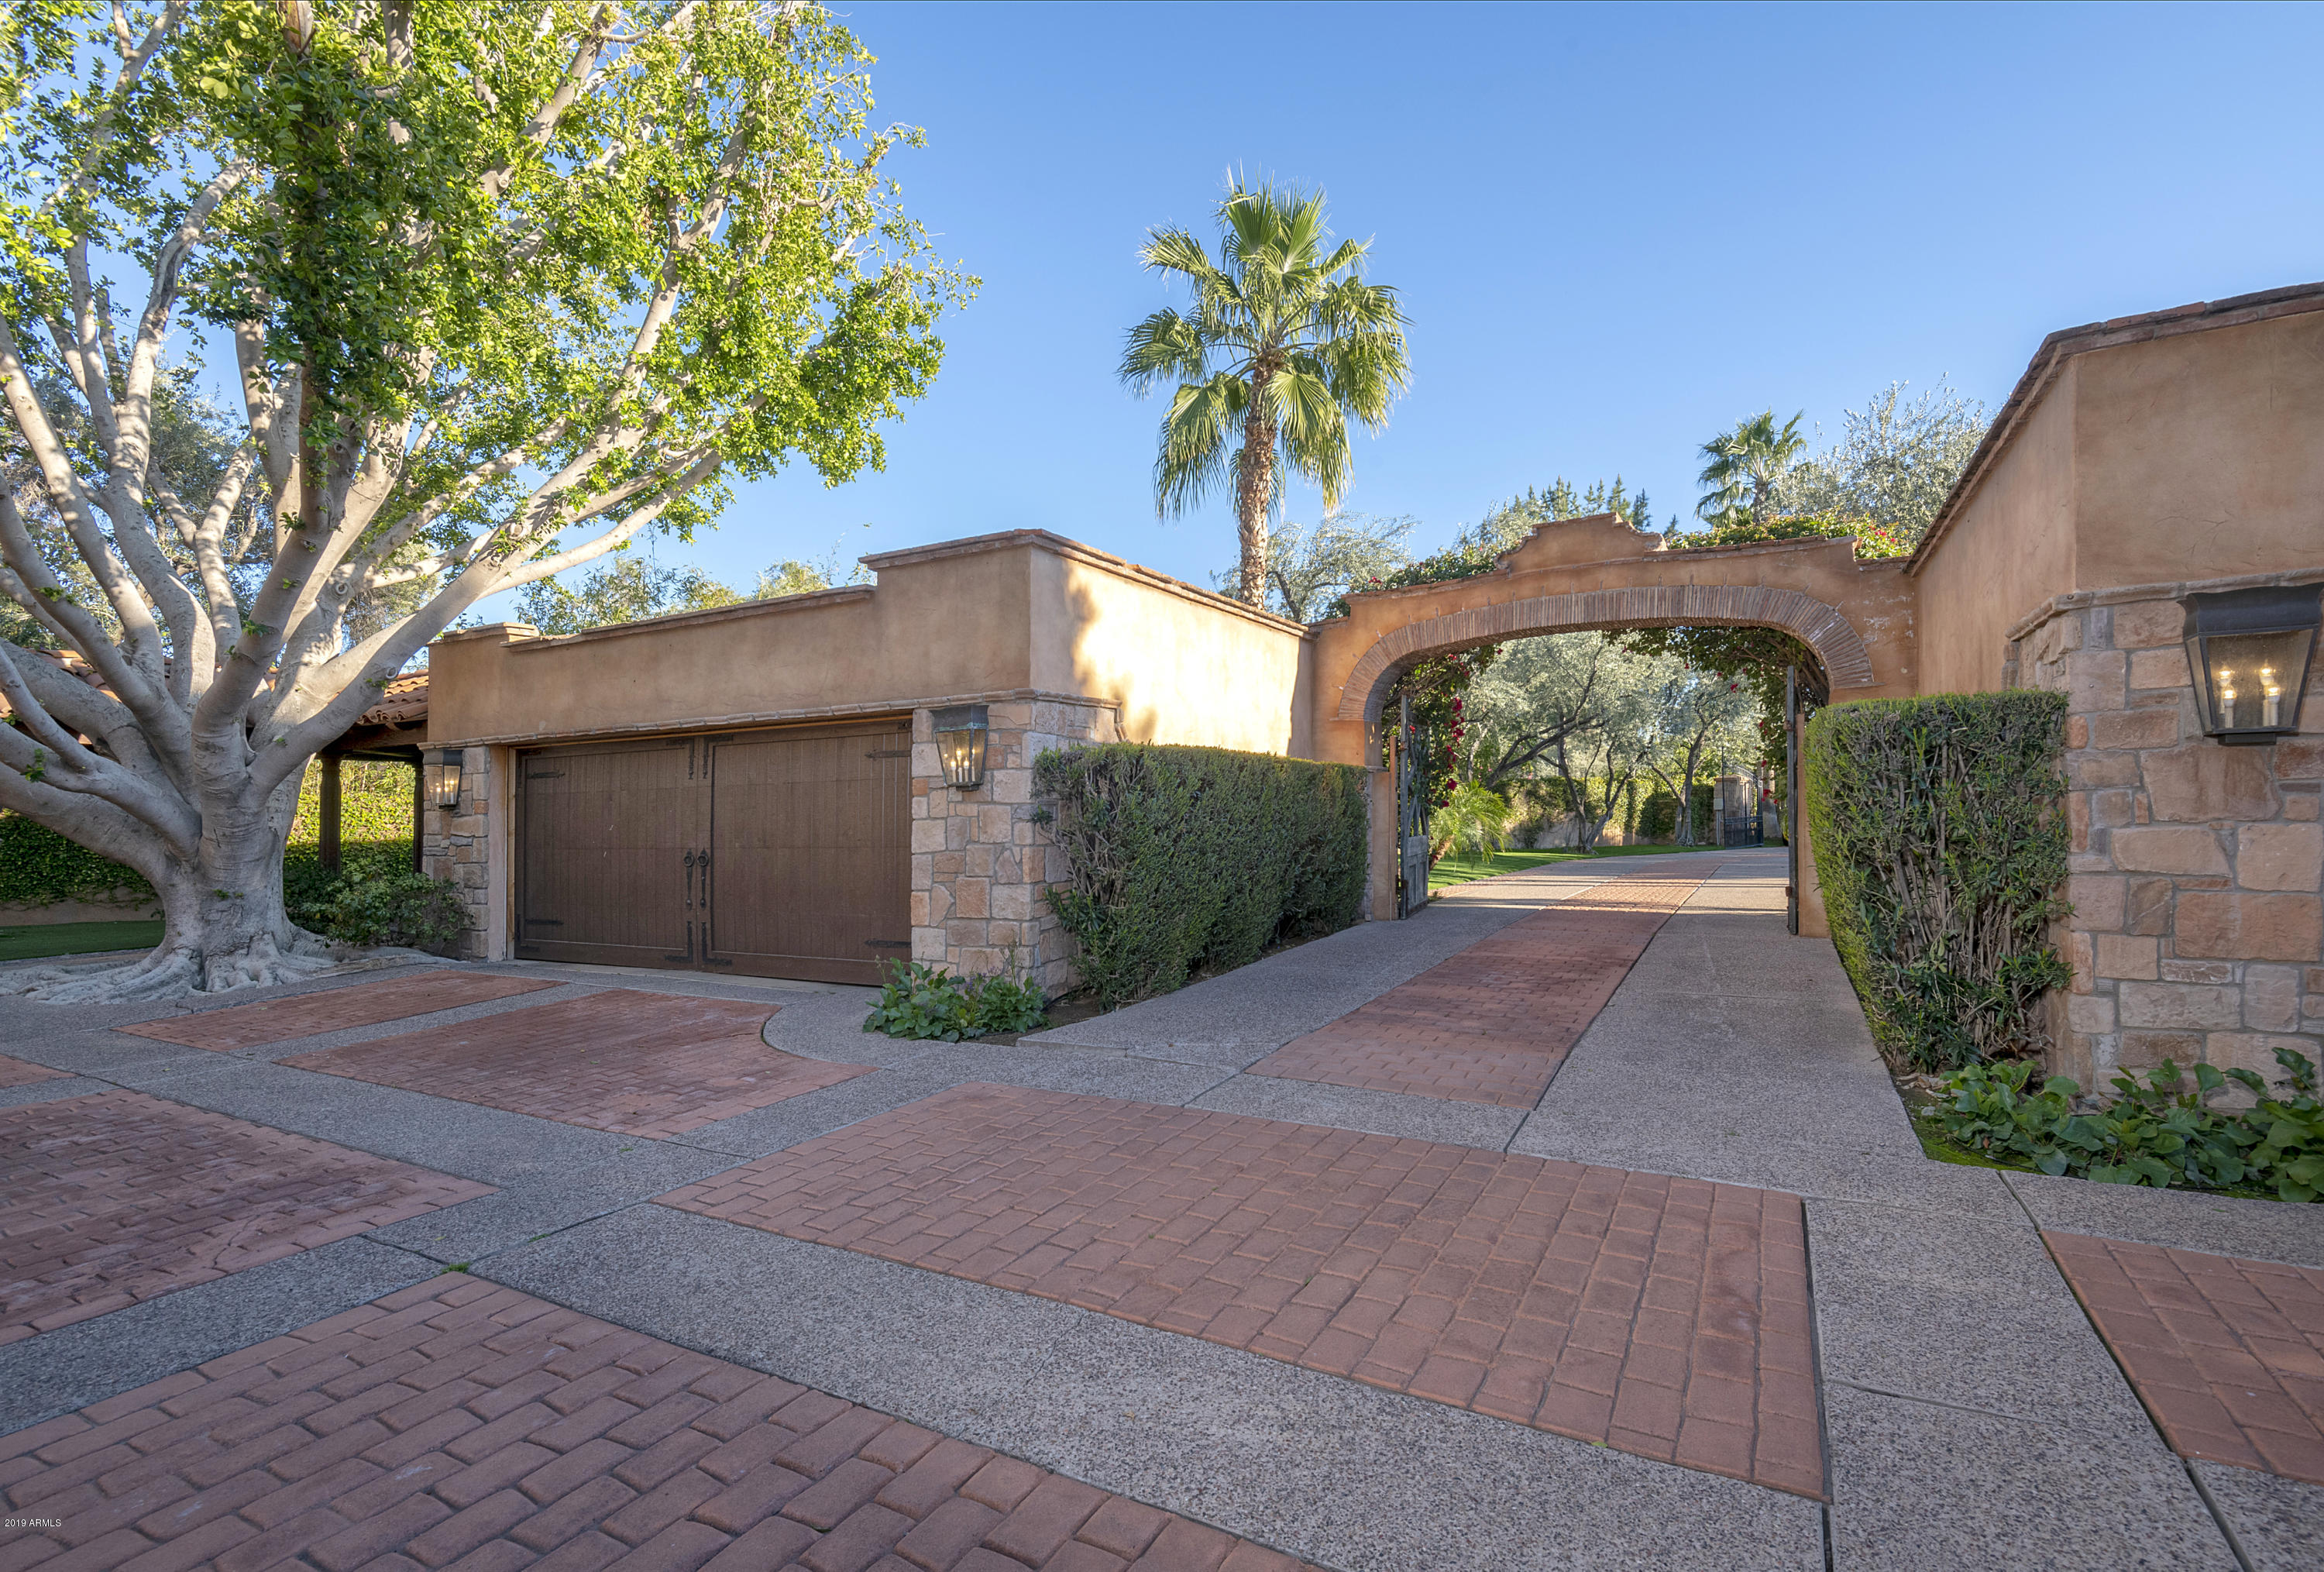 MLS 5937883 55 Biltmore Estate, Phoenix, AZ 85016